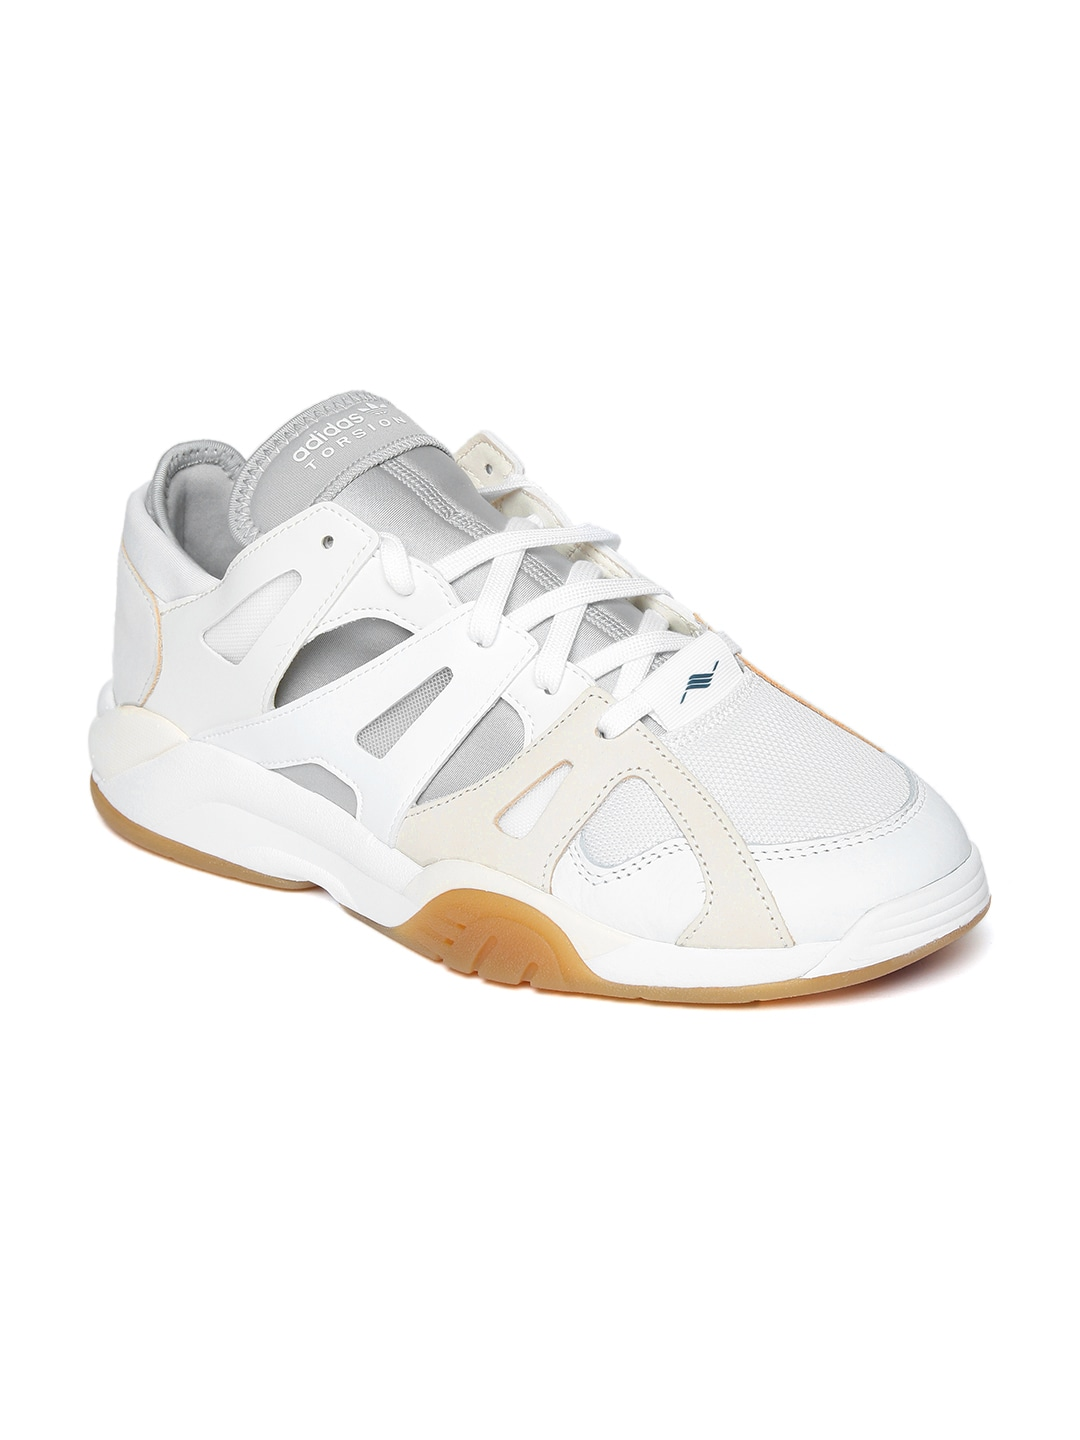 buy popular d2653 0dc55 Adidas Shoes - Buy Adidas Shoes for Men   Women Online - Myntra